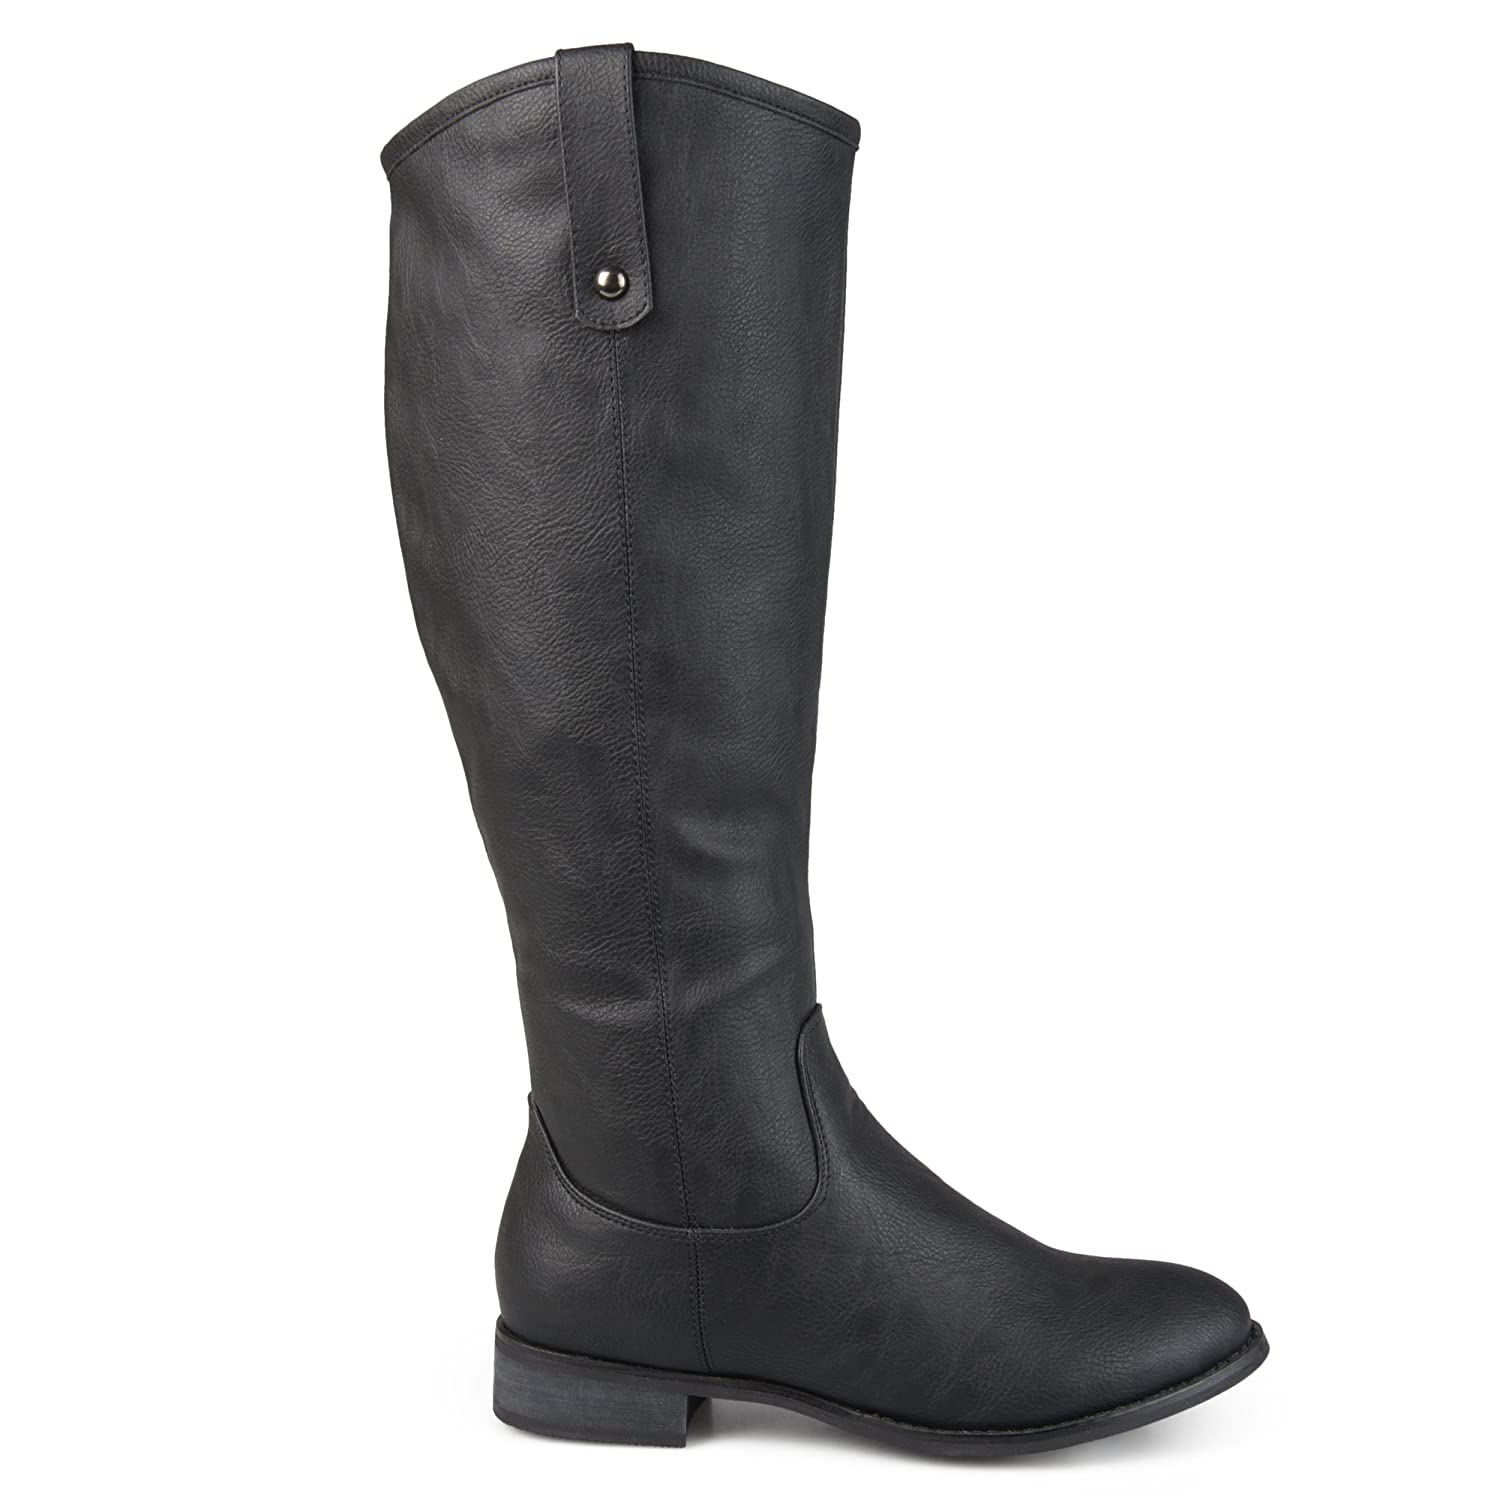 Wide and Extra Wide Calf Mid-Calf Round Toe Boots Womens Faux Leather Regular Brinley Co